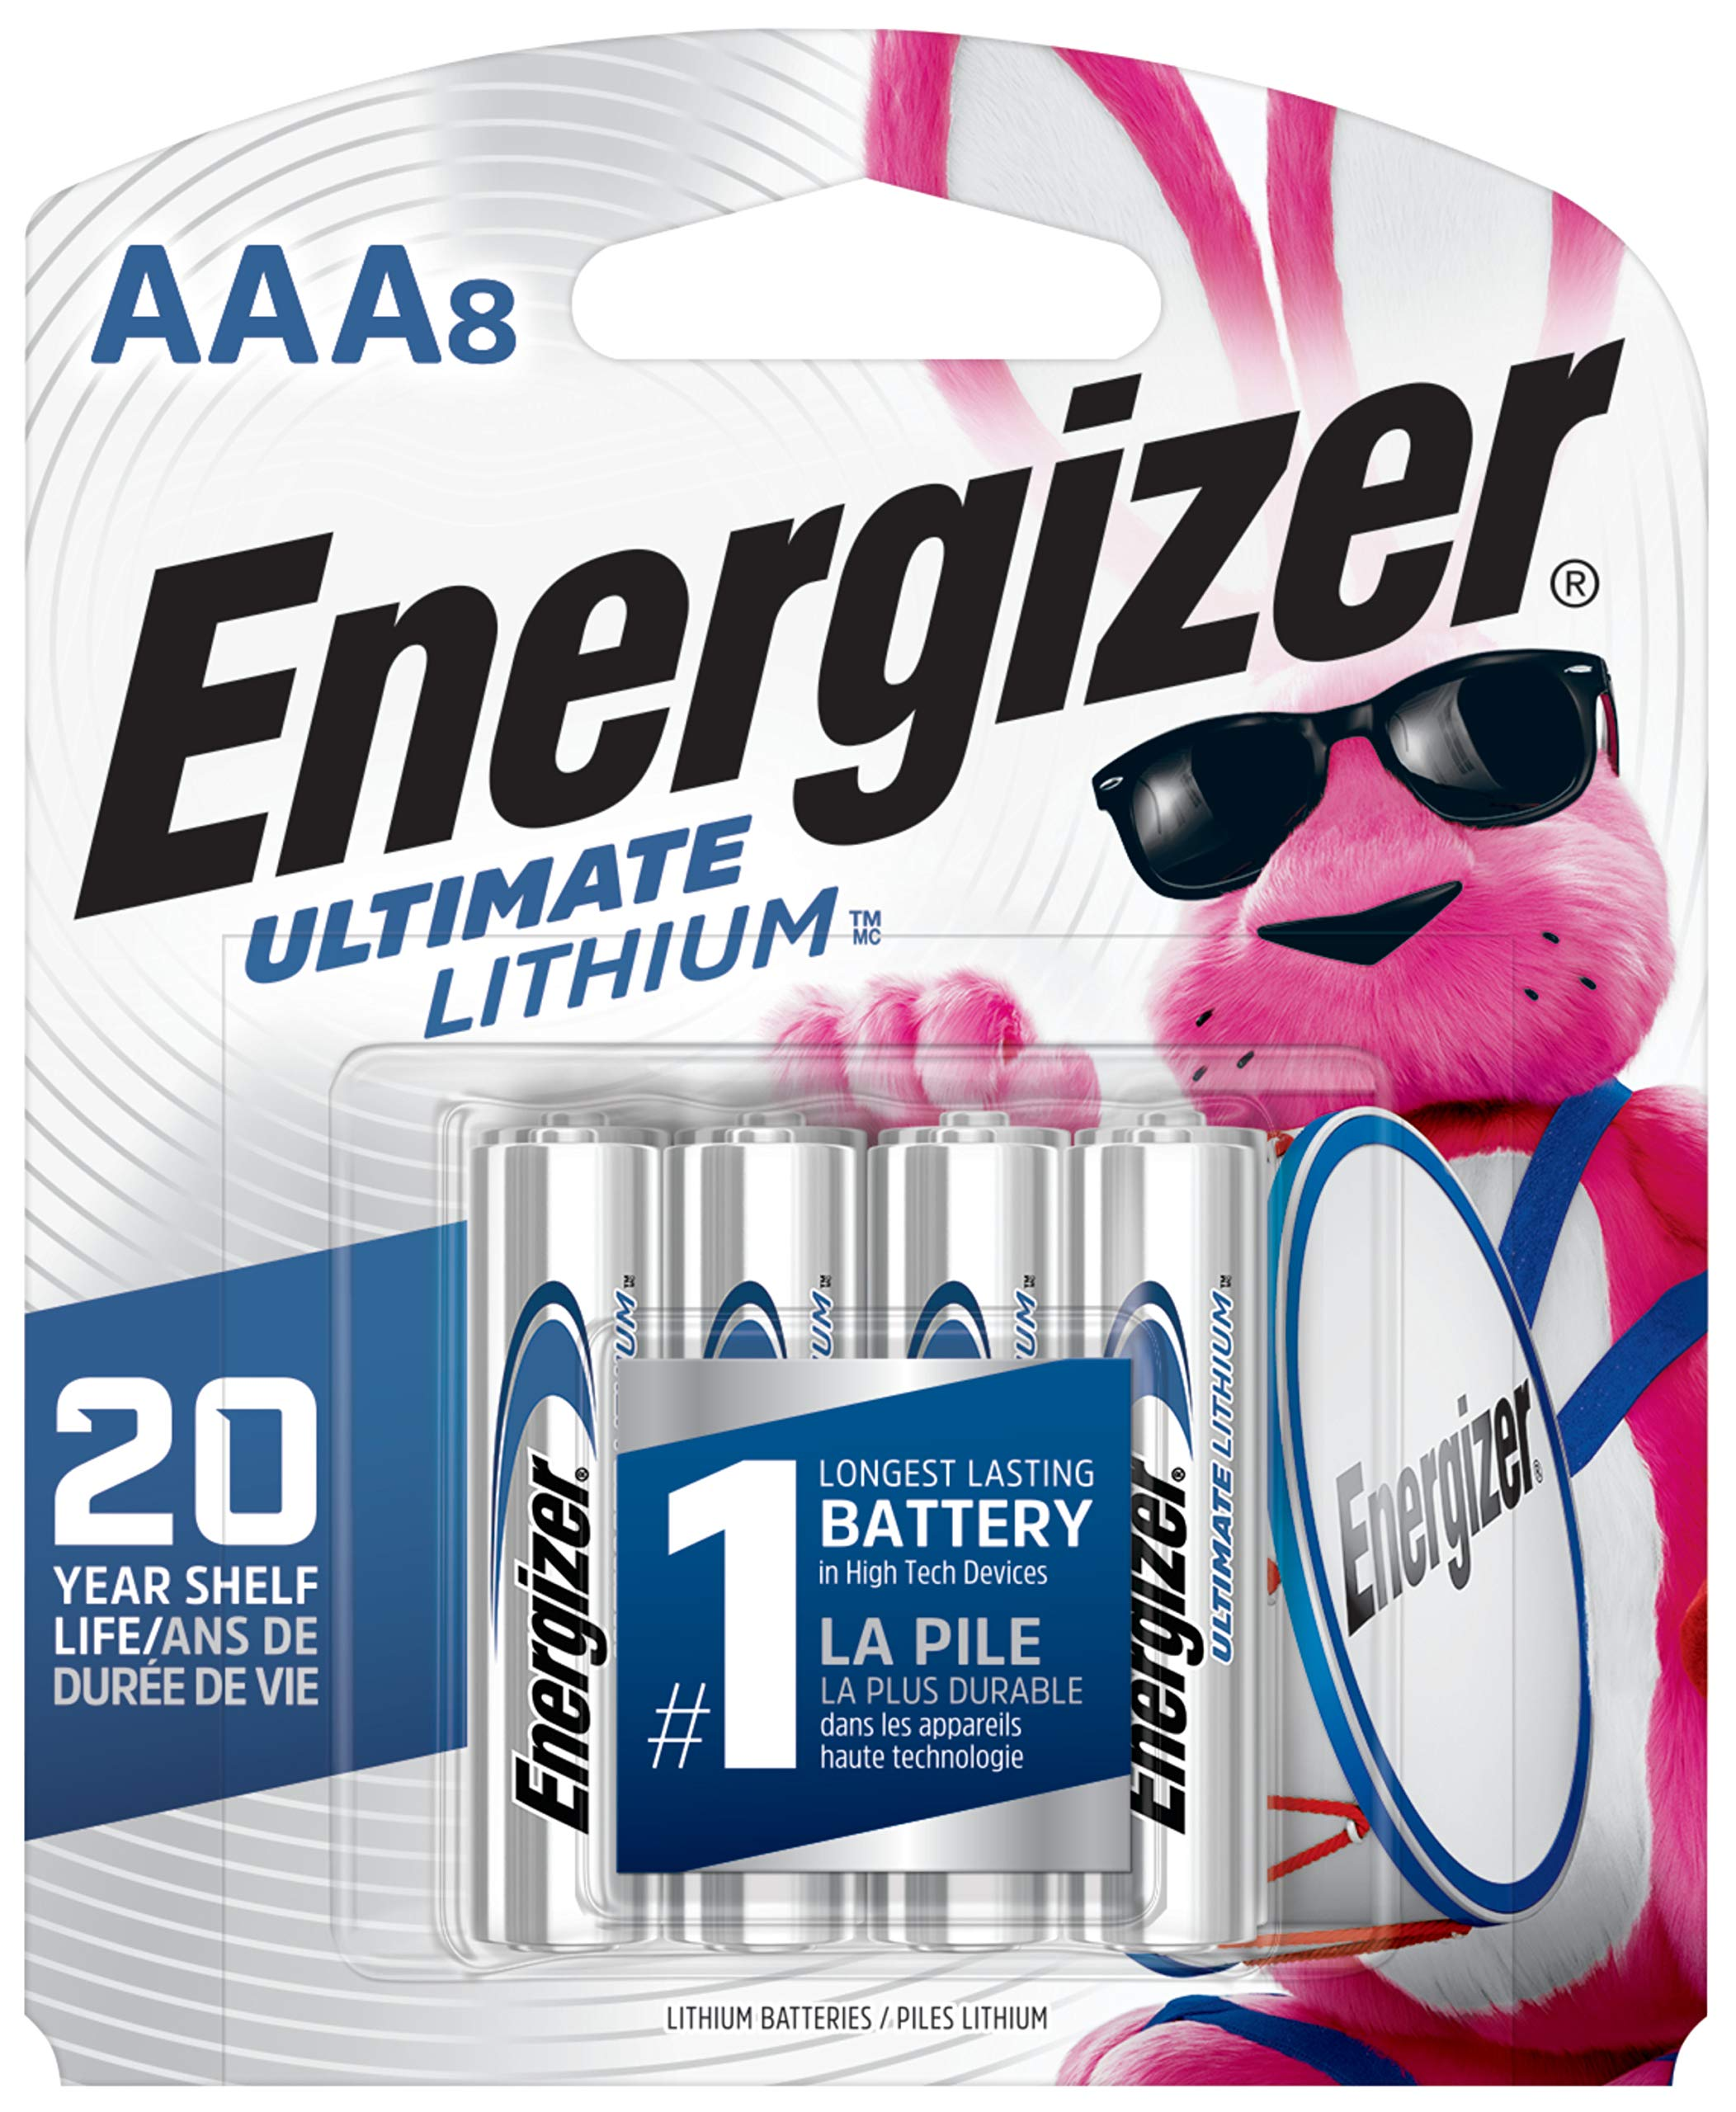 Energizer AAA Lithium Batteries, Ultimate Lithium Triple A Battery (8 Count), Longest-Lasting AAA Battery - Packaging May Vary by Energizer